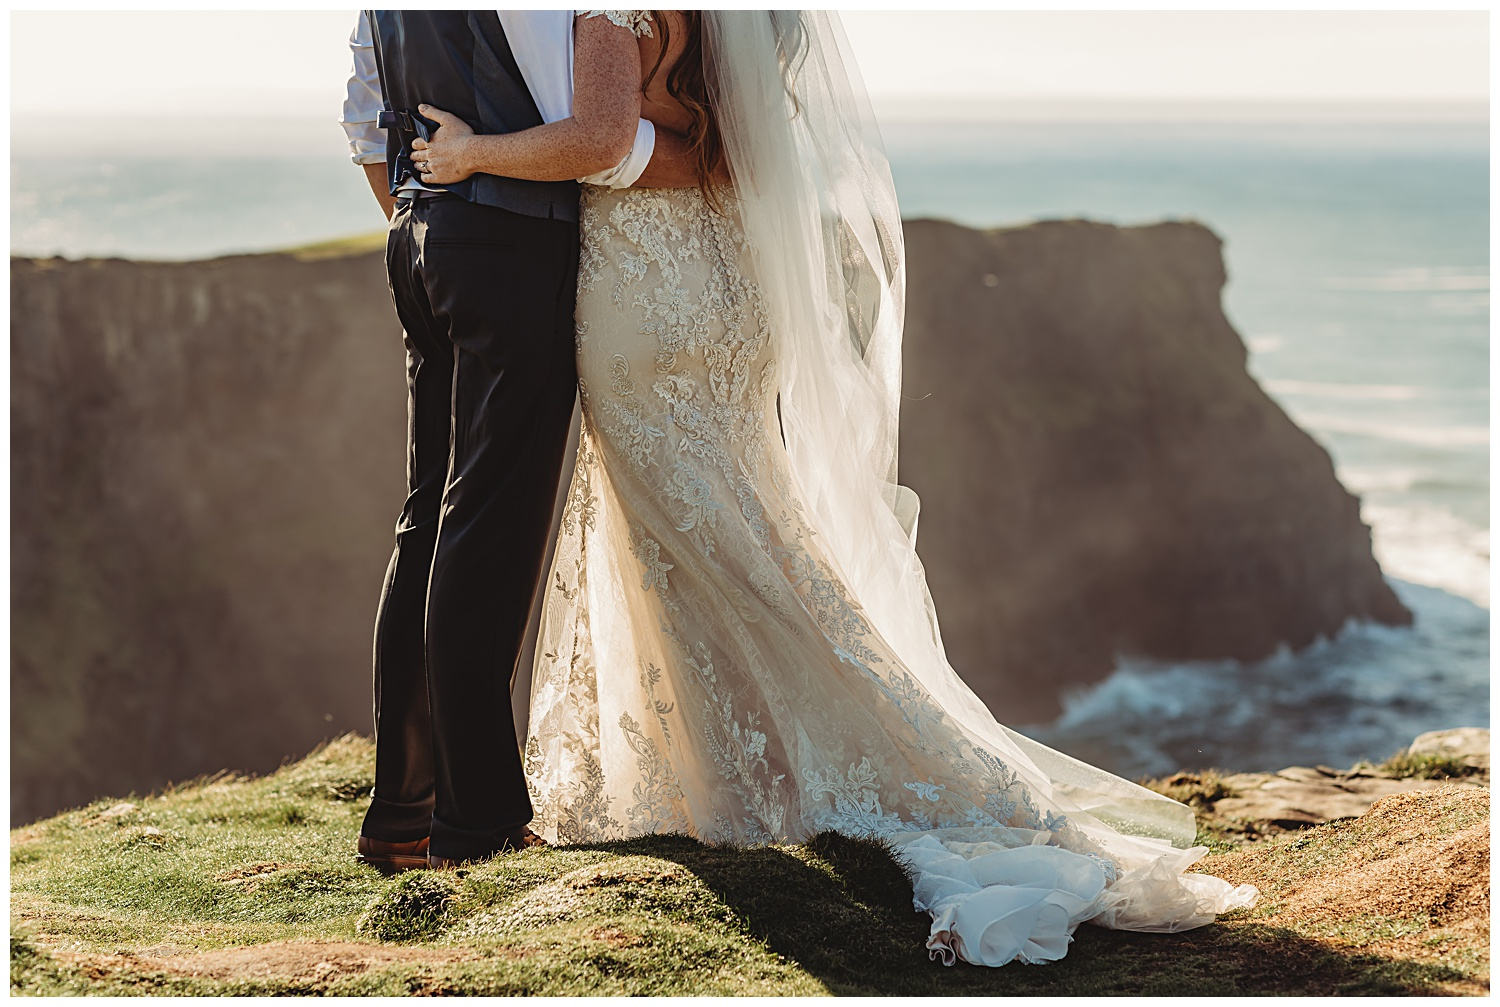 The Cliffs of Moher Destination Wedding Liscannor, County Clare, Ireland_1246.jpg